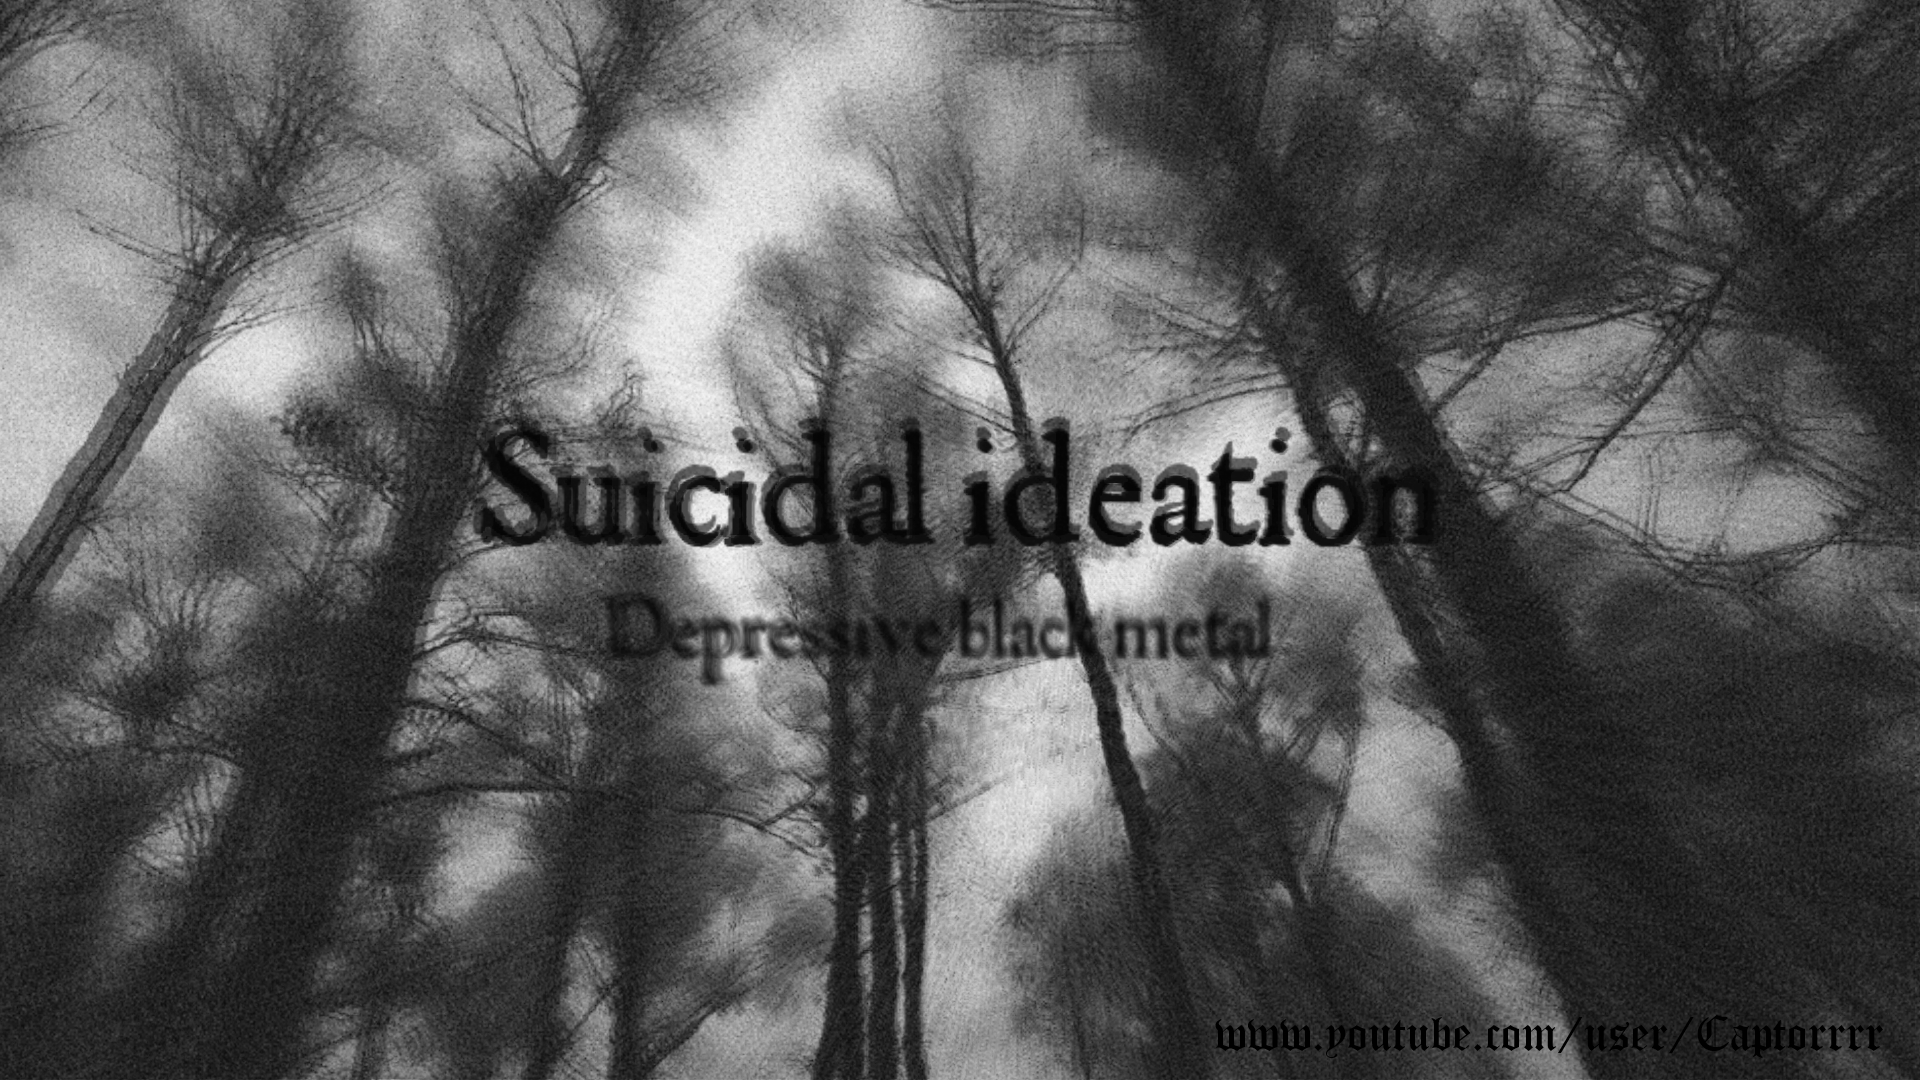 SUICIDAL IDEATION Depressive black metal